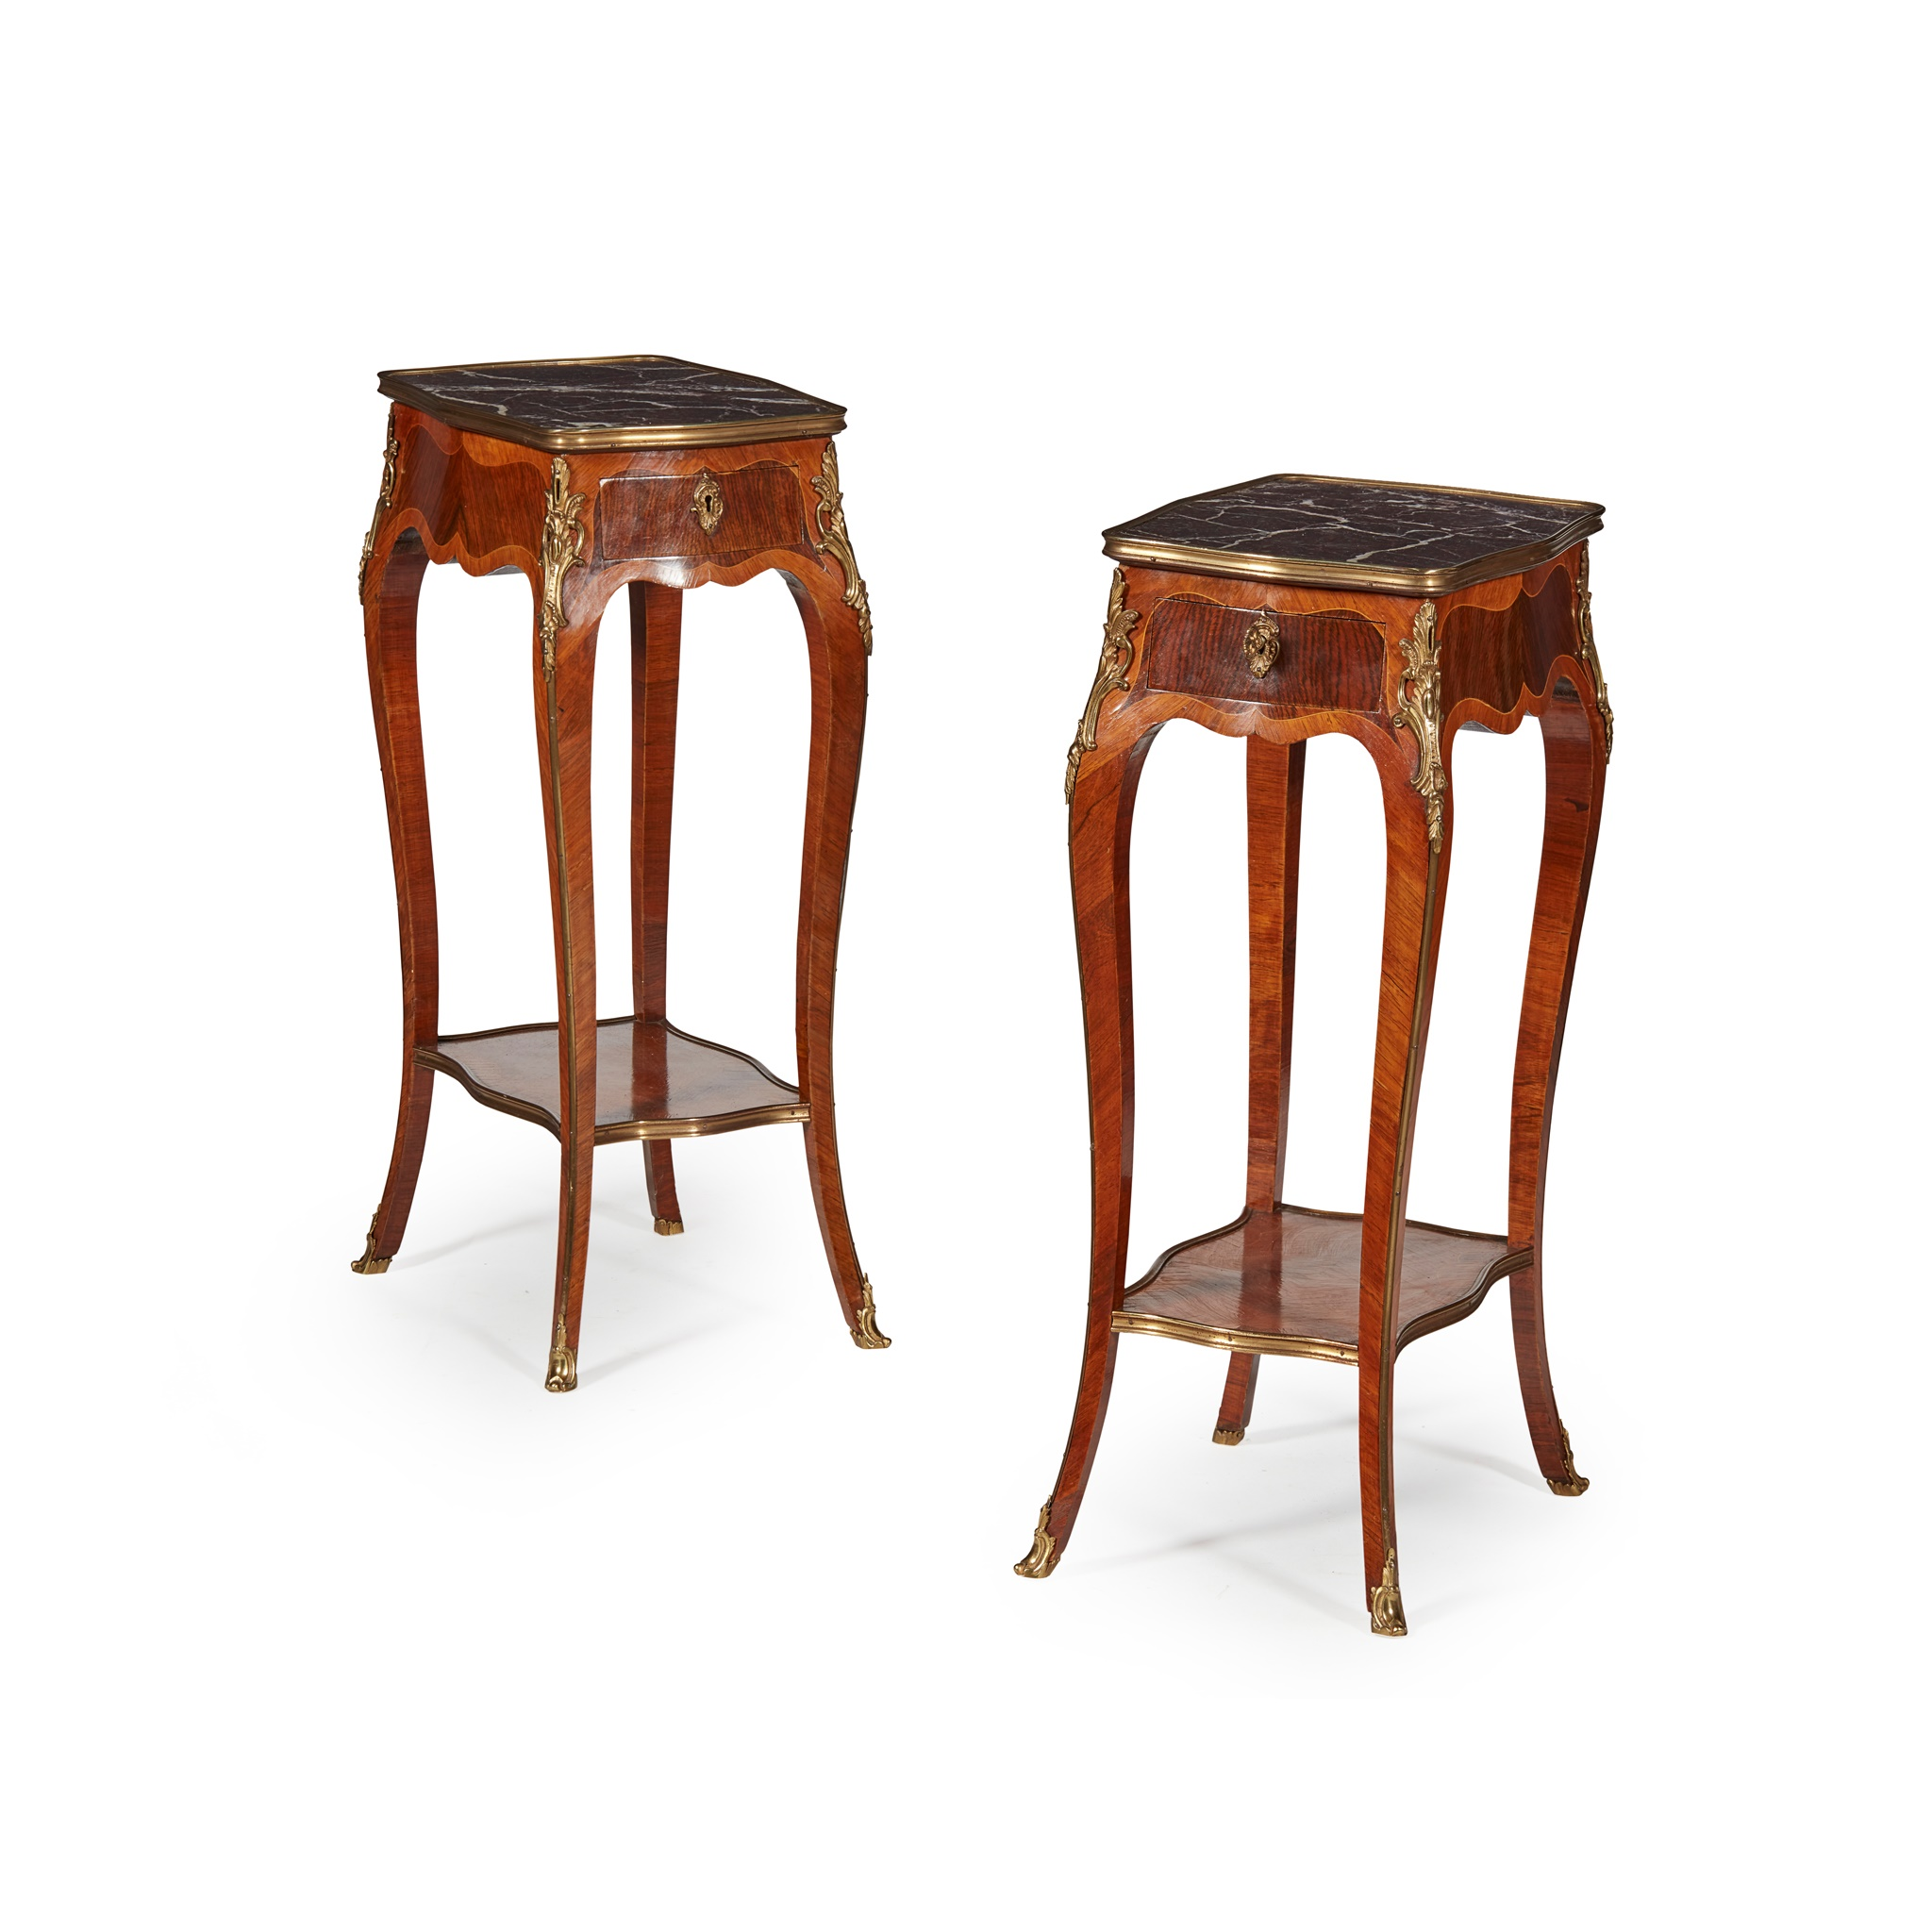 PAIR OF LOUIS XV STYLE KINGWOOD AND AMARANTH MARBLE TOPPED SIDE TABLES LATE 19TH CENTURY